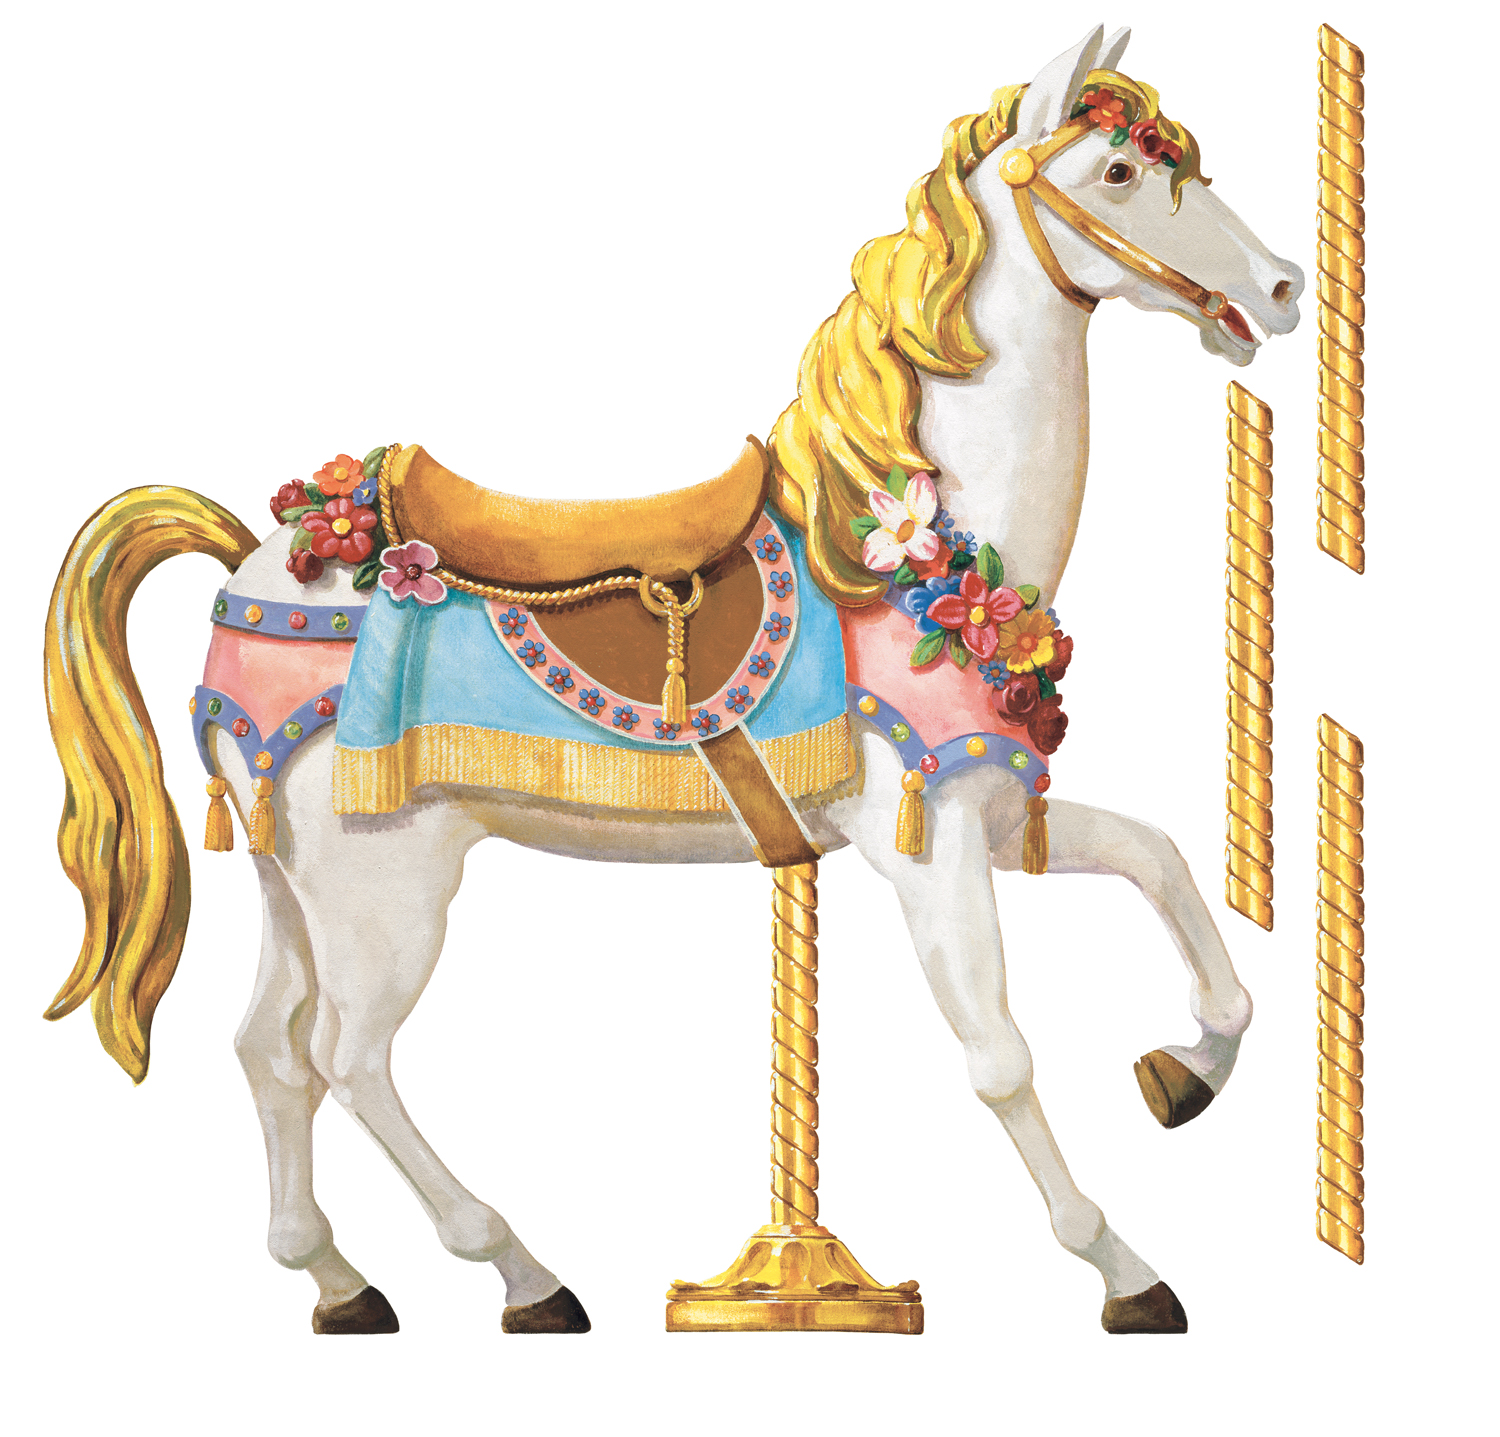 Carneval clipart horse carousel #8 - Carousel Horse PNG HD